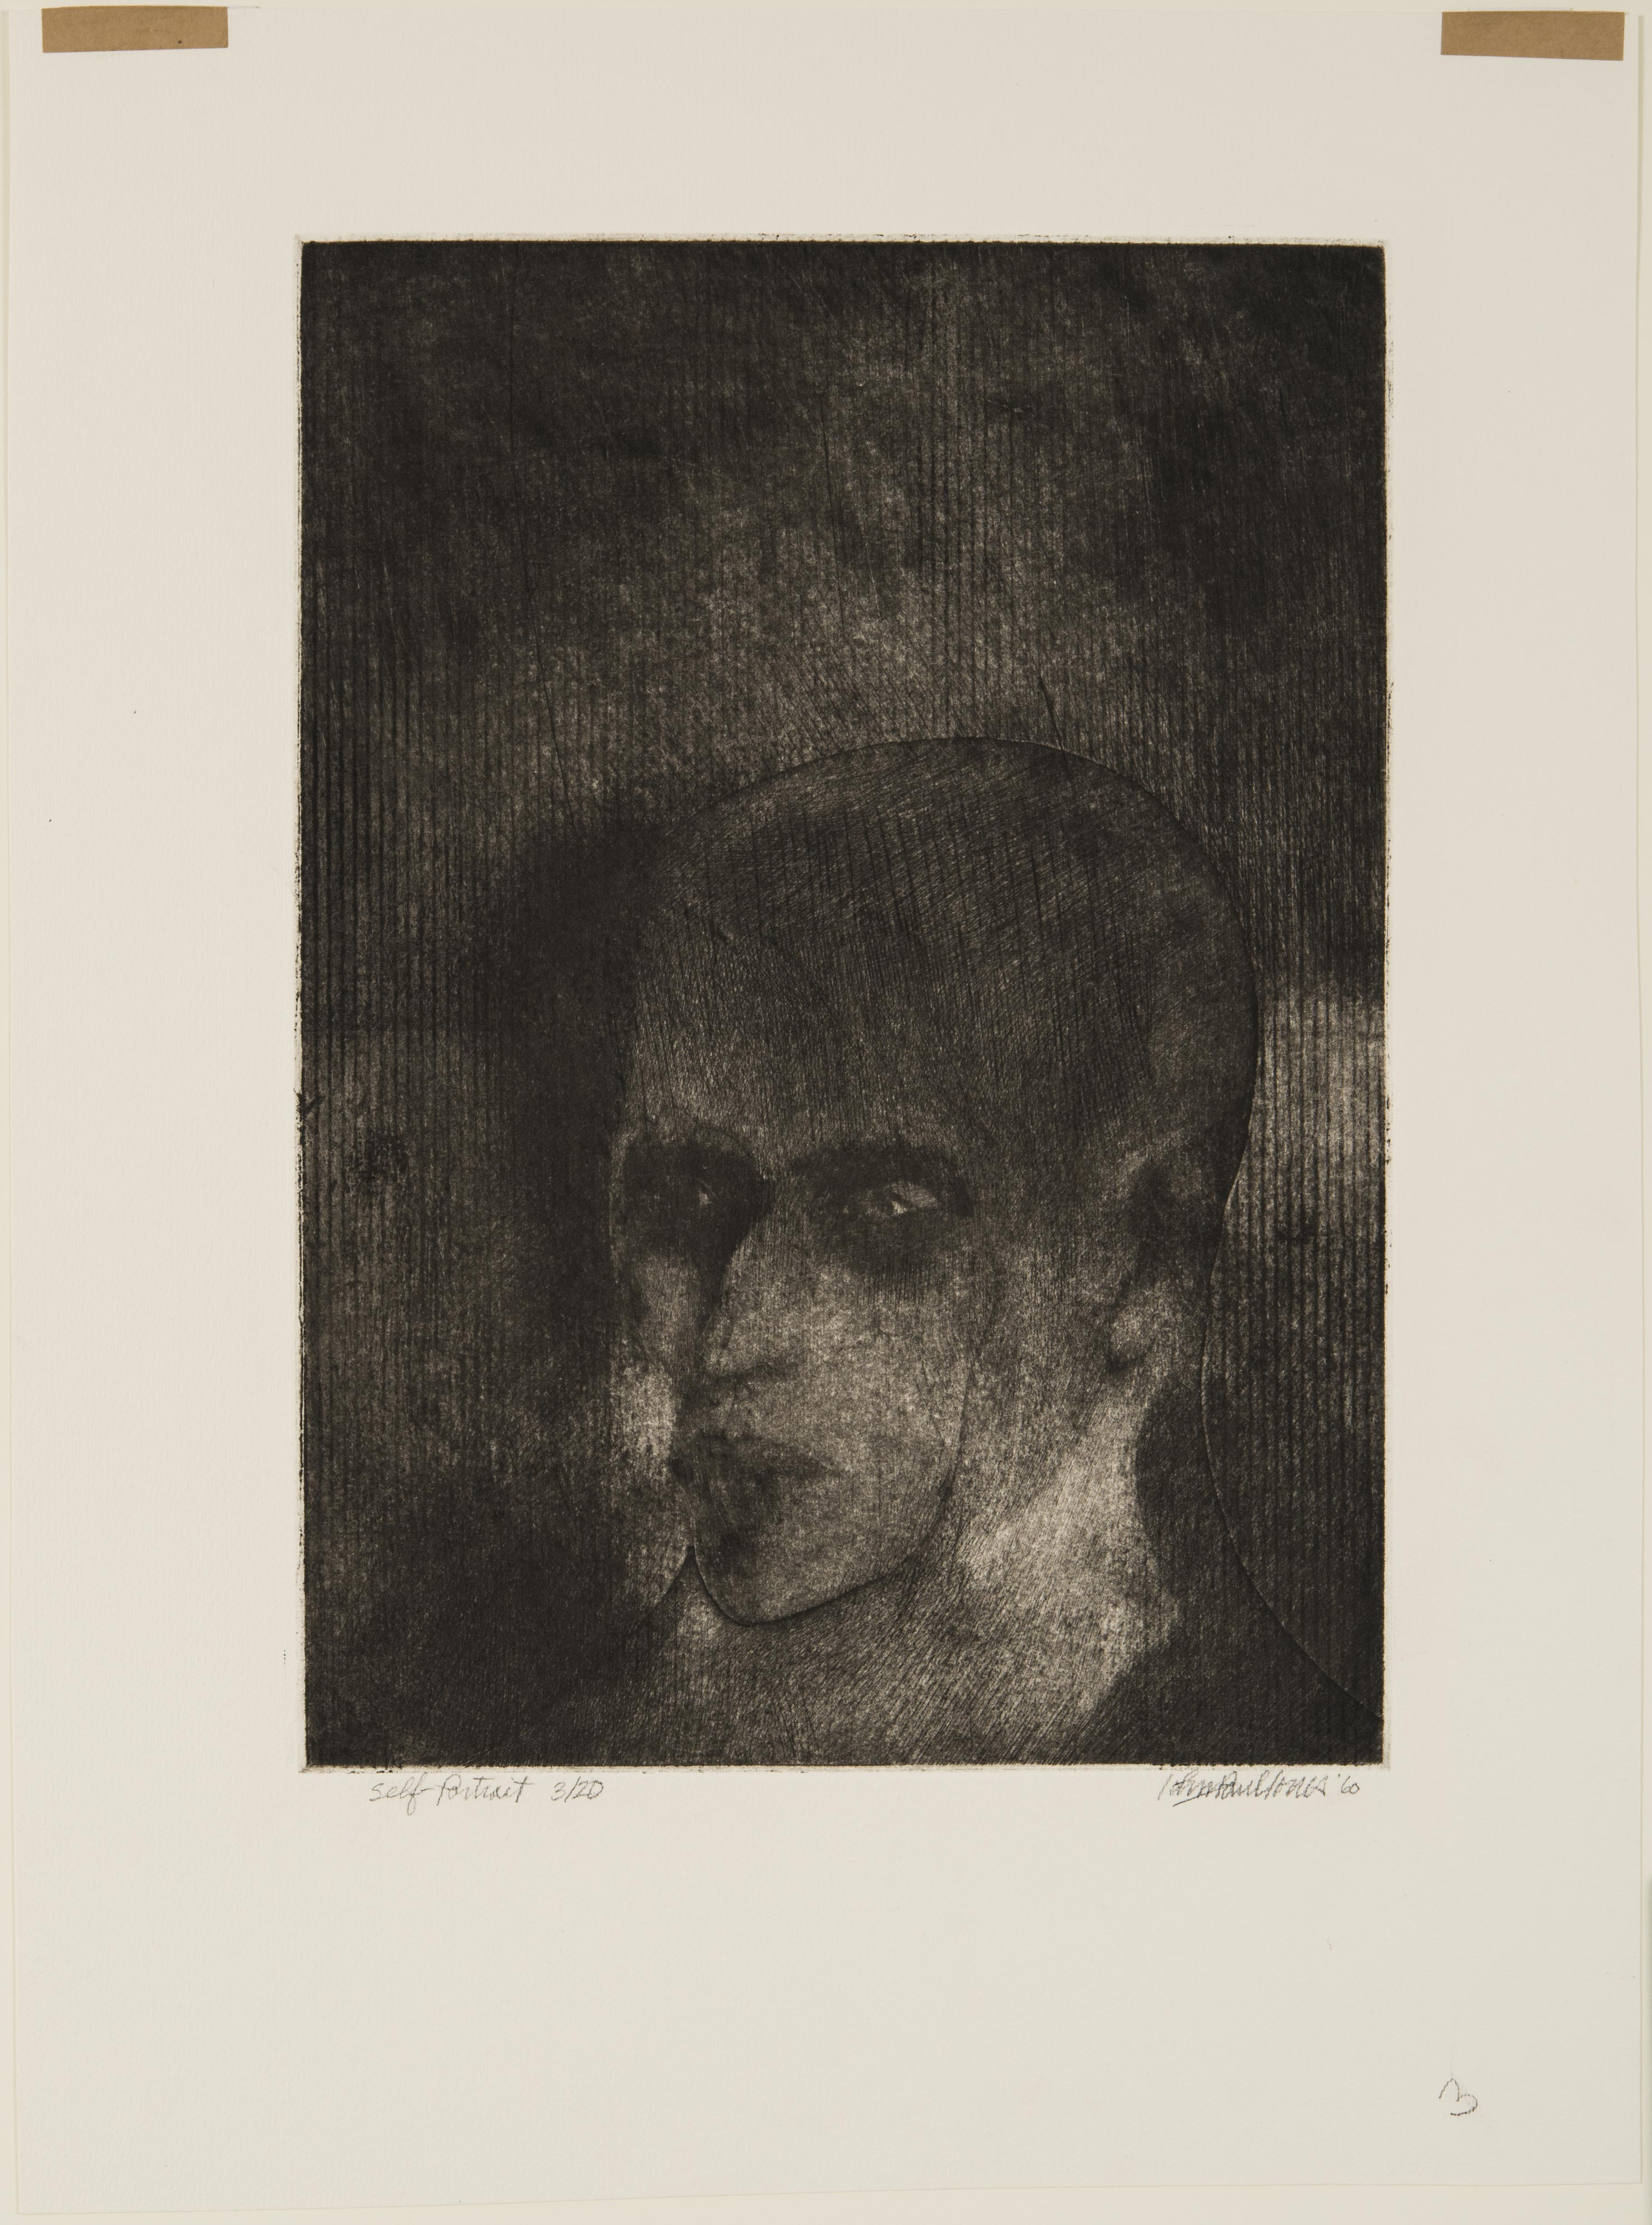 John Paul Jones, Self Portrait, 1960